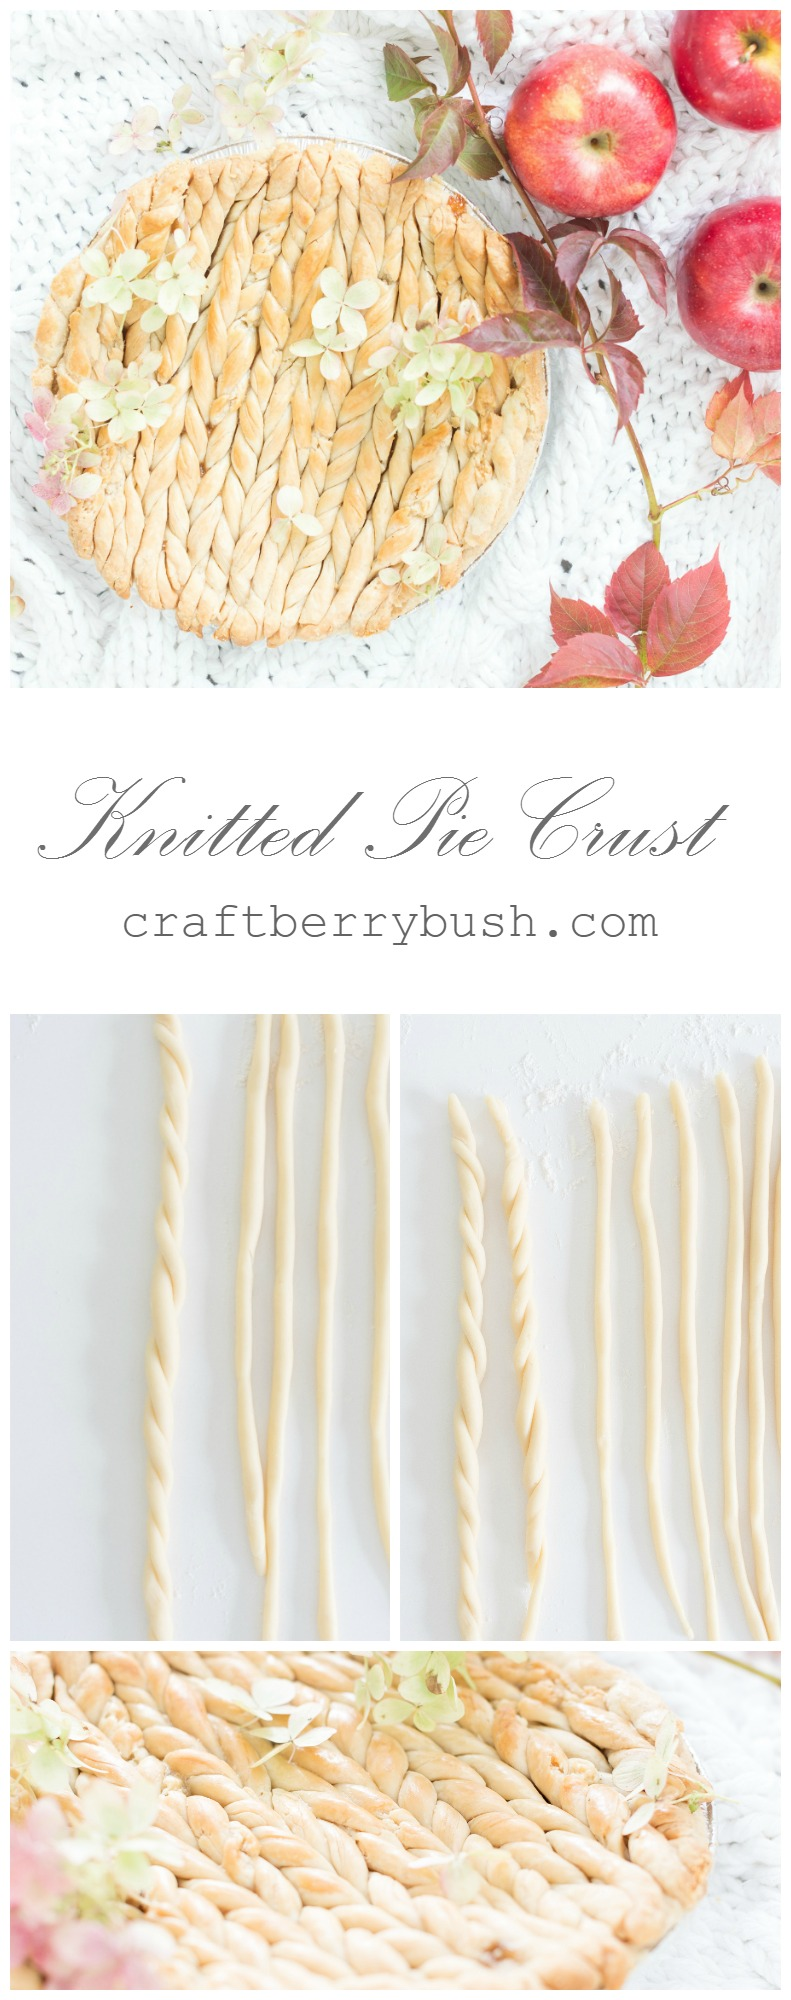 Knitted Pie Crust